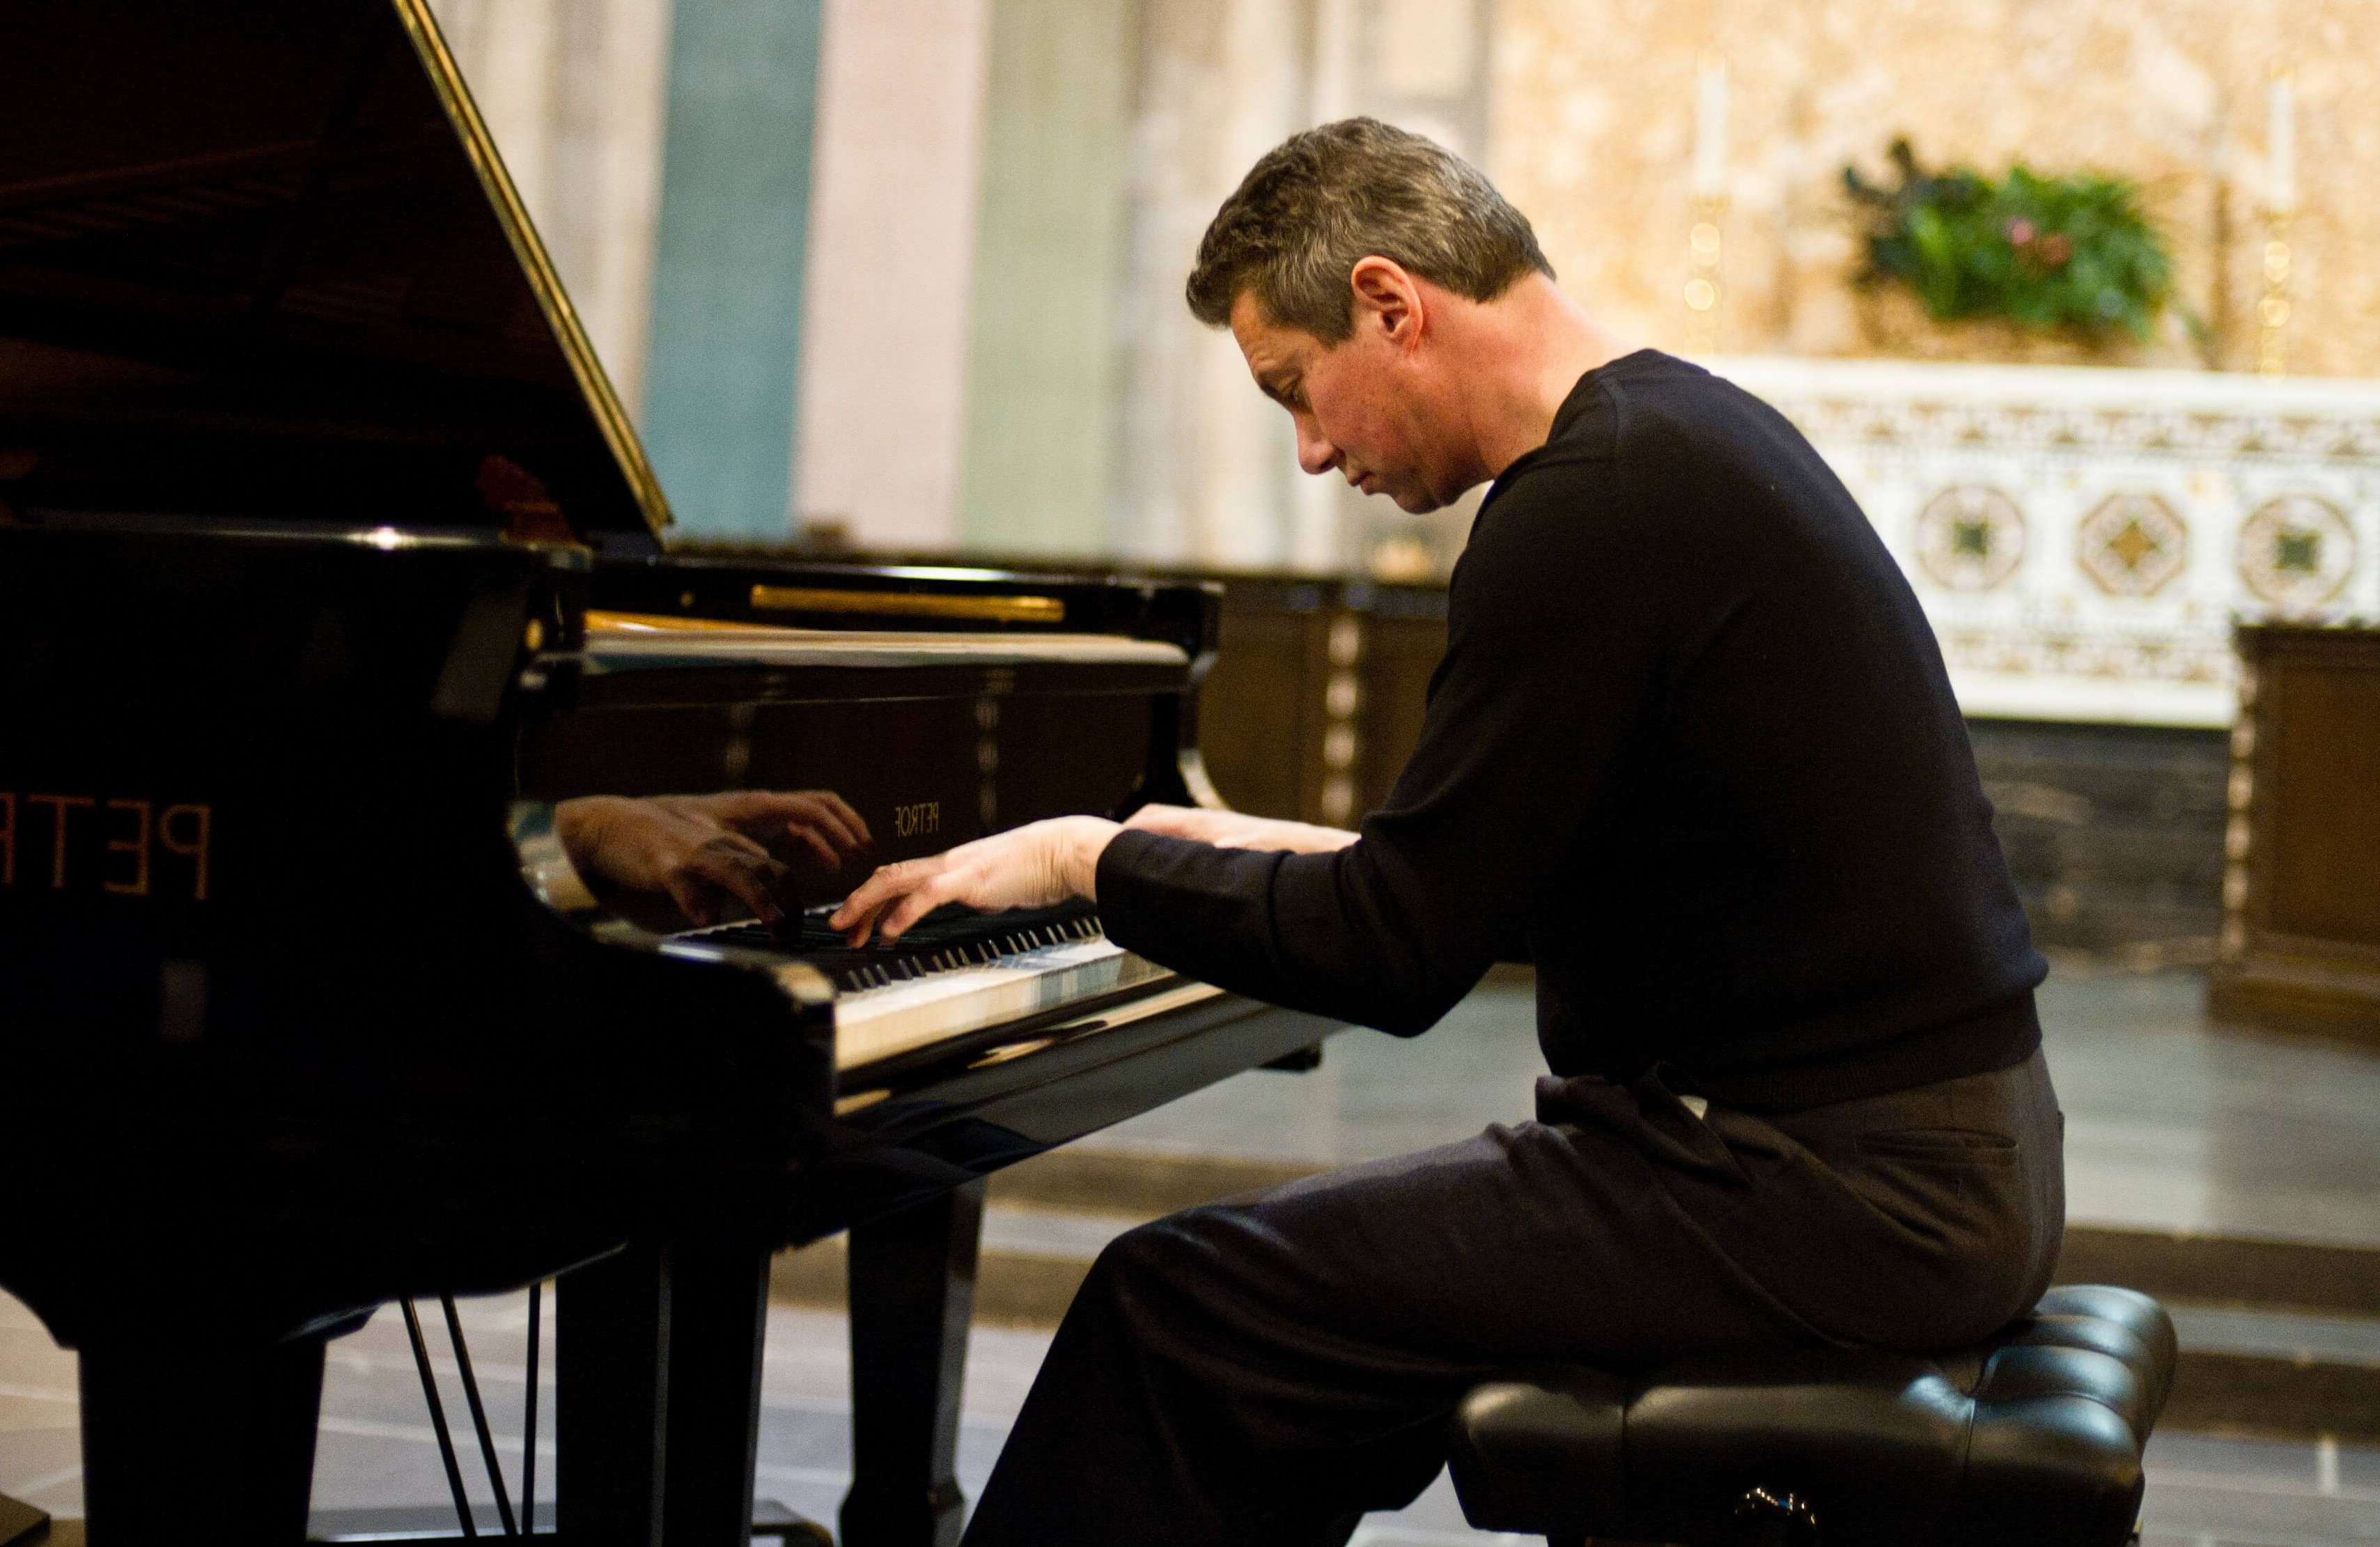 Musician Mark Valenti at a piano